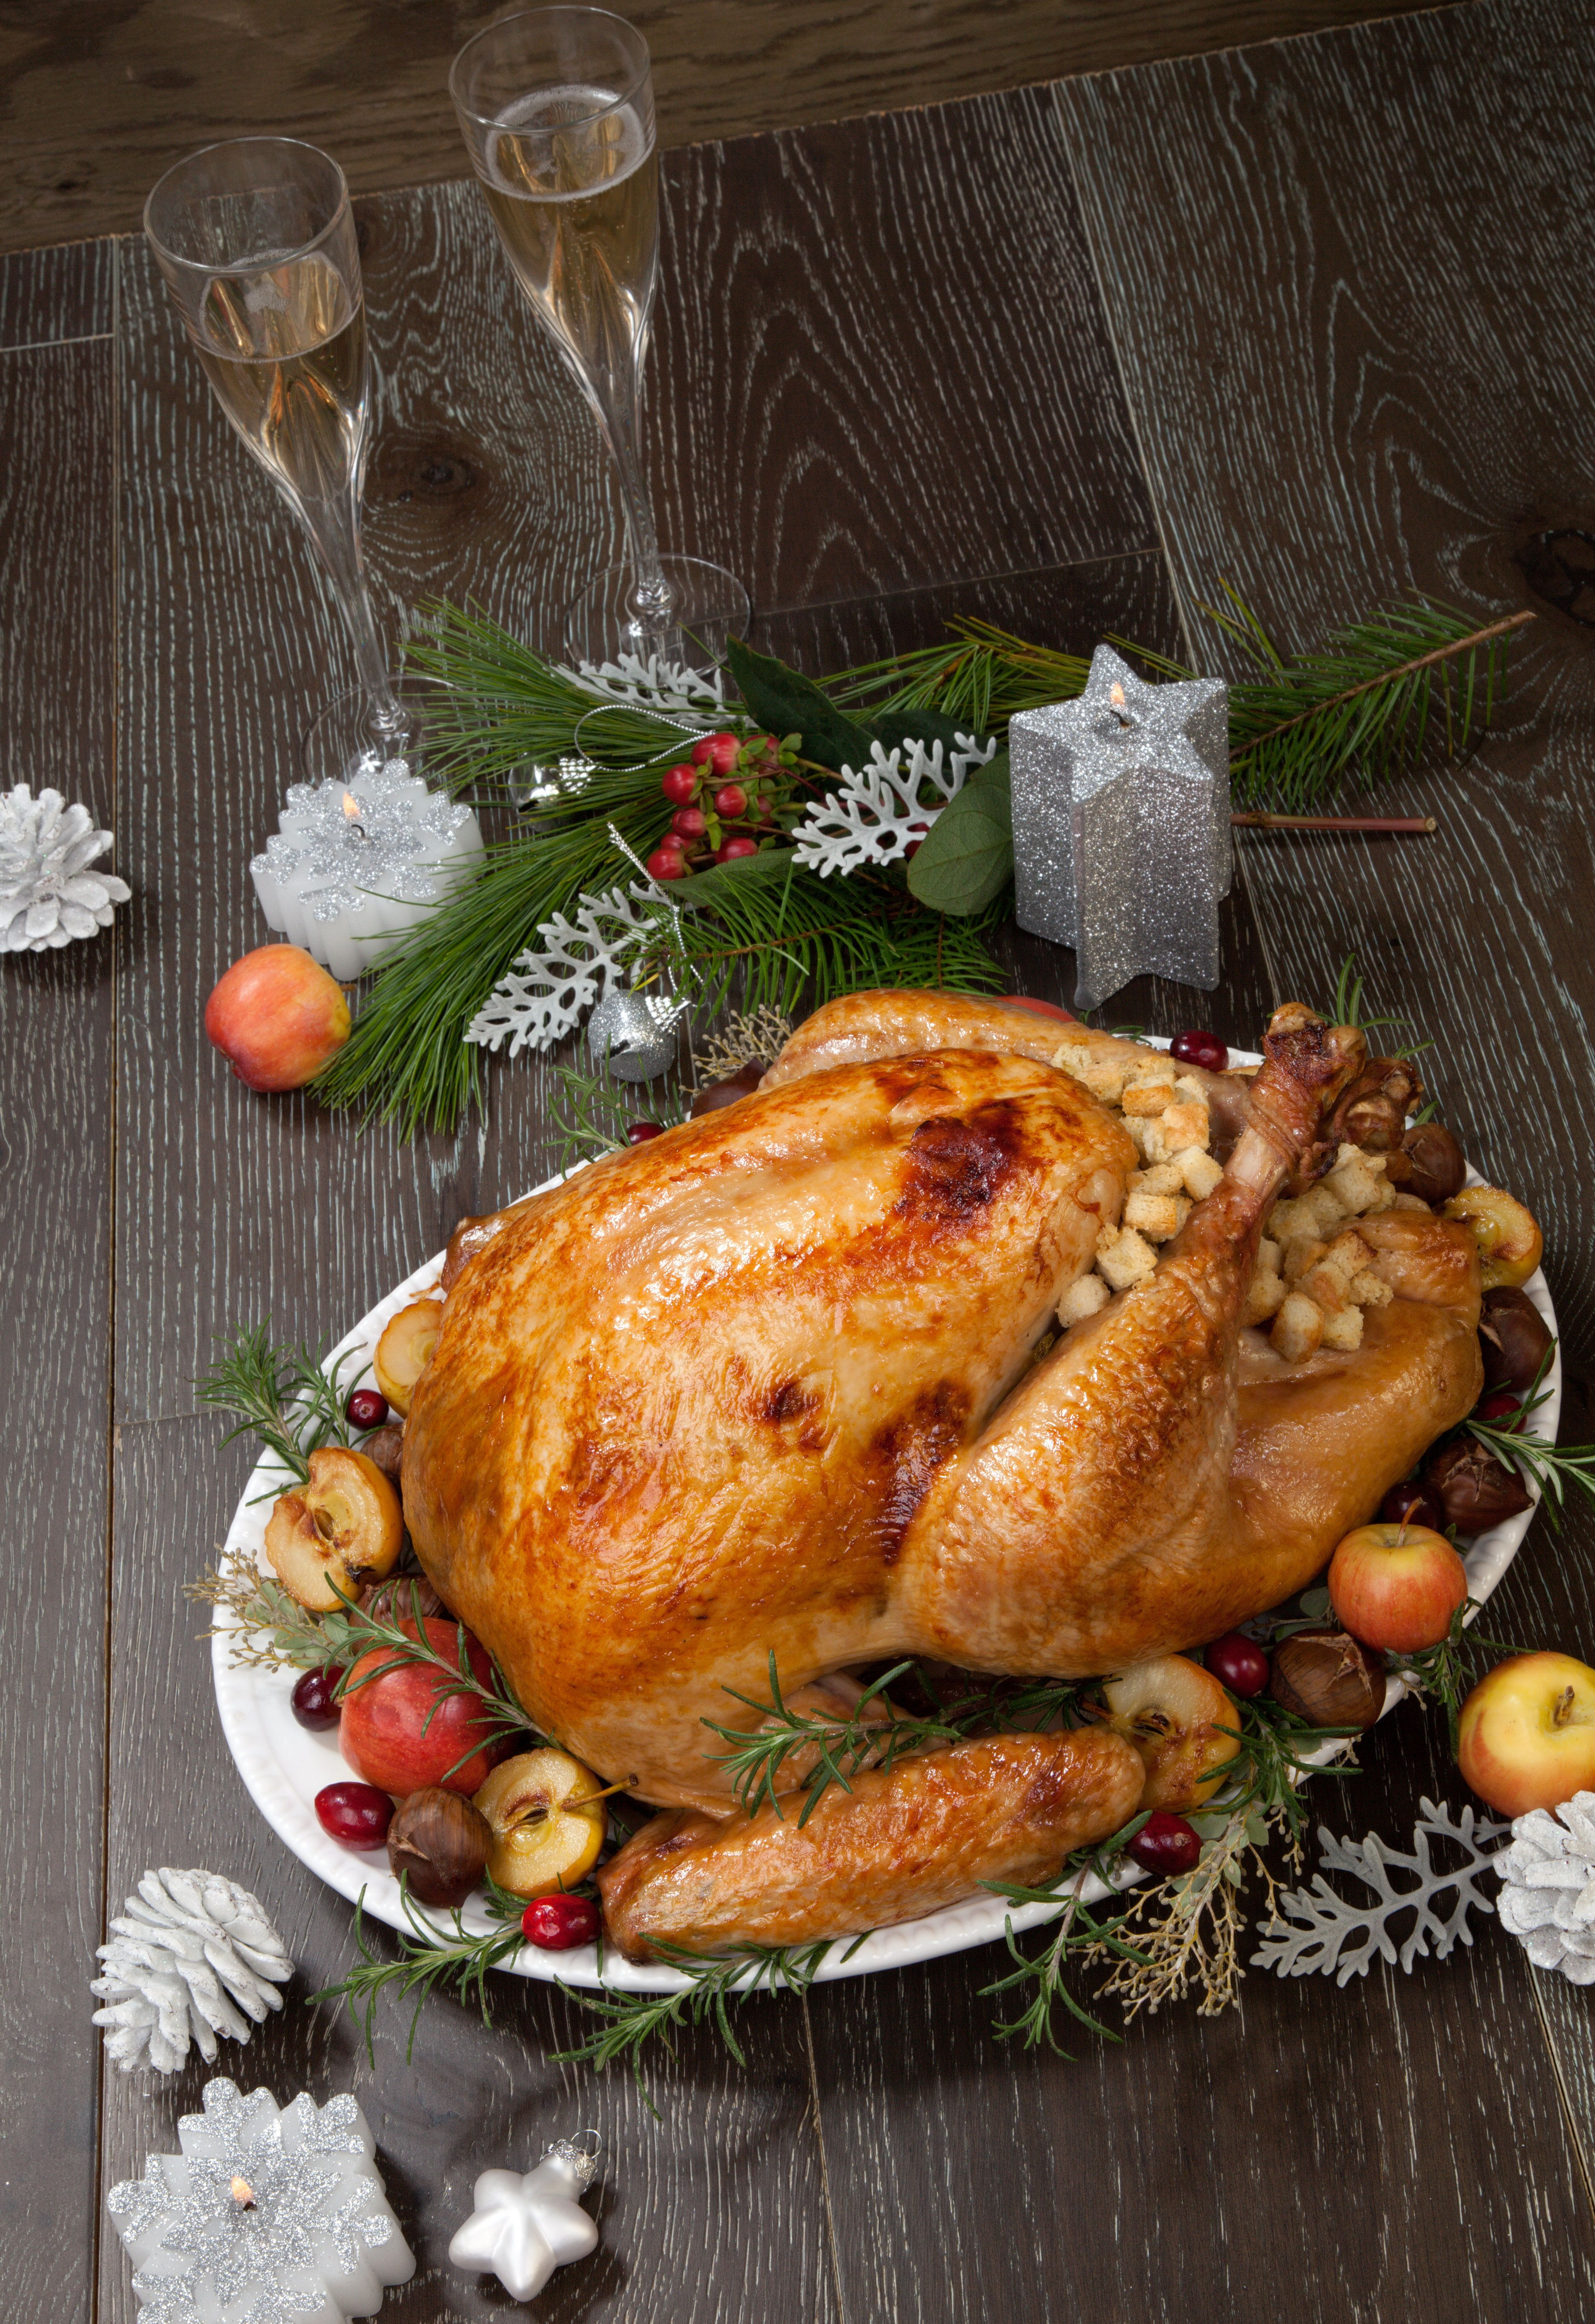 Garnished roasted Christmas turkey with grab apples, sweet chestnut, cranberry, Christmas ornaments, candles, and pine cones.'n